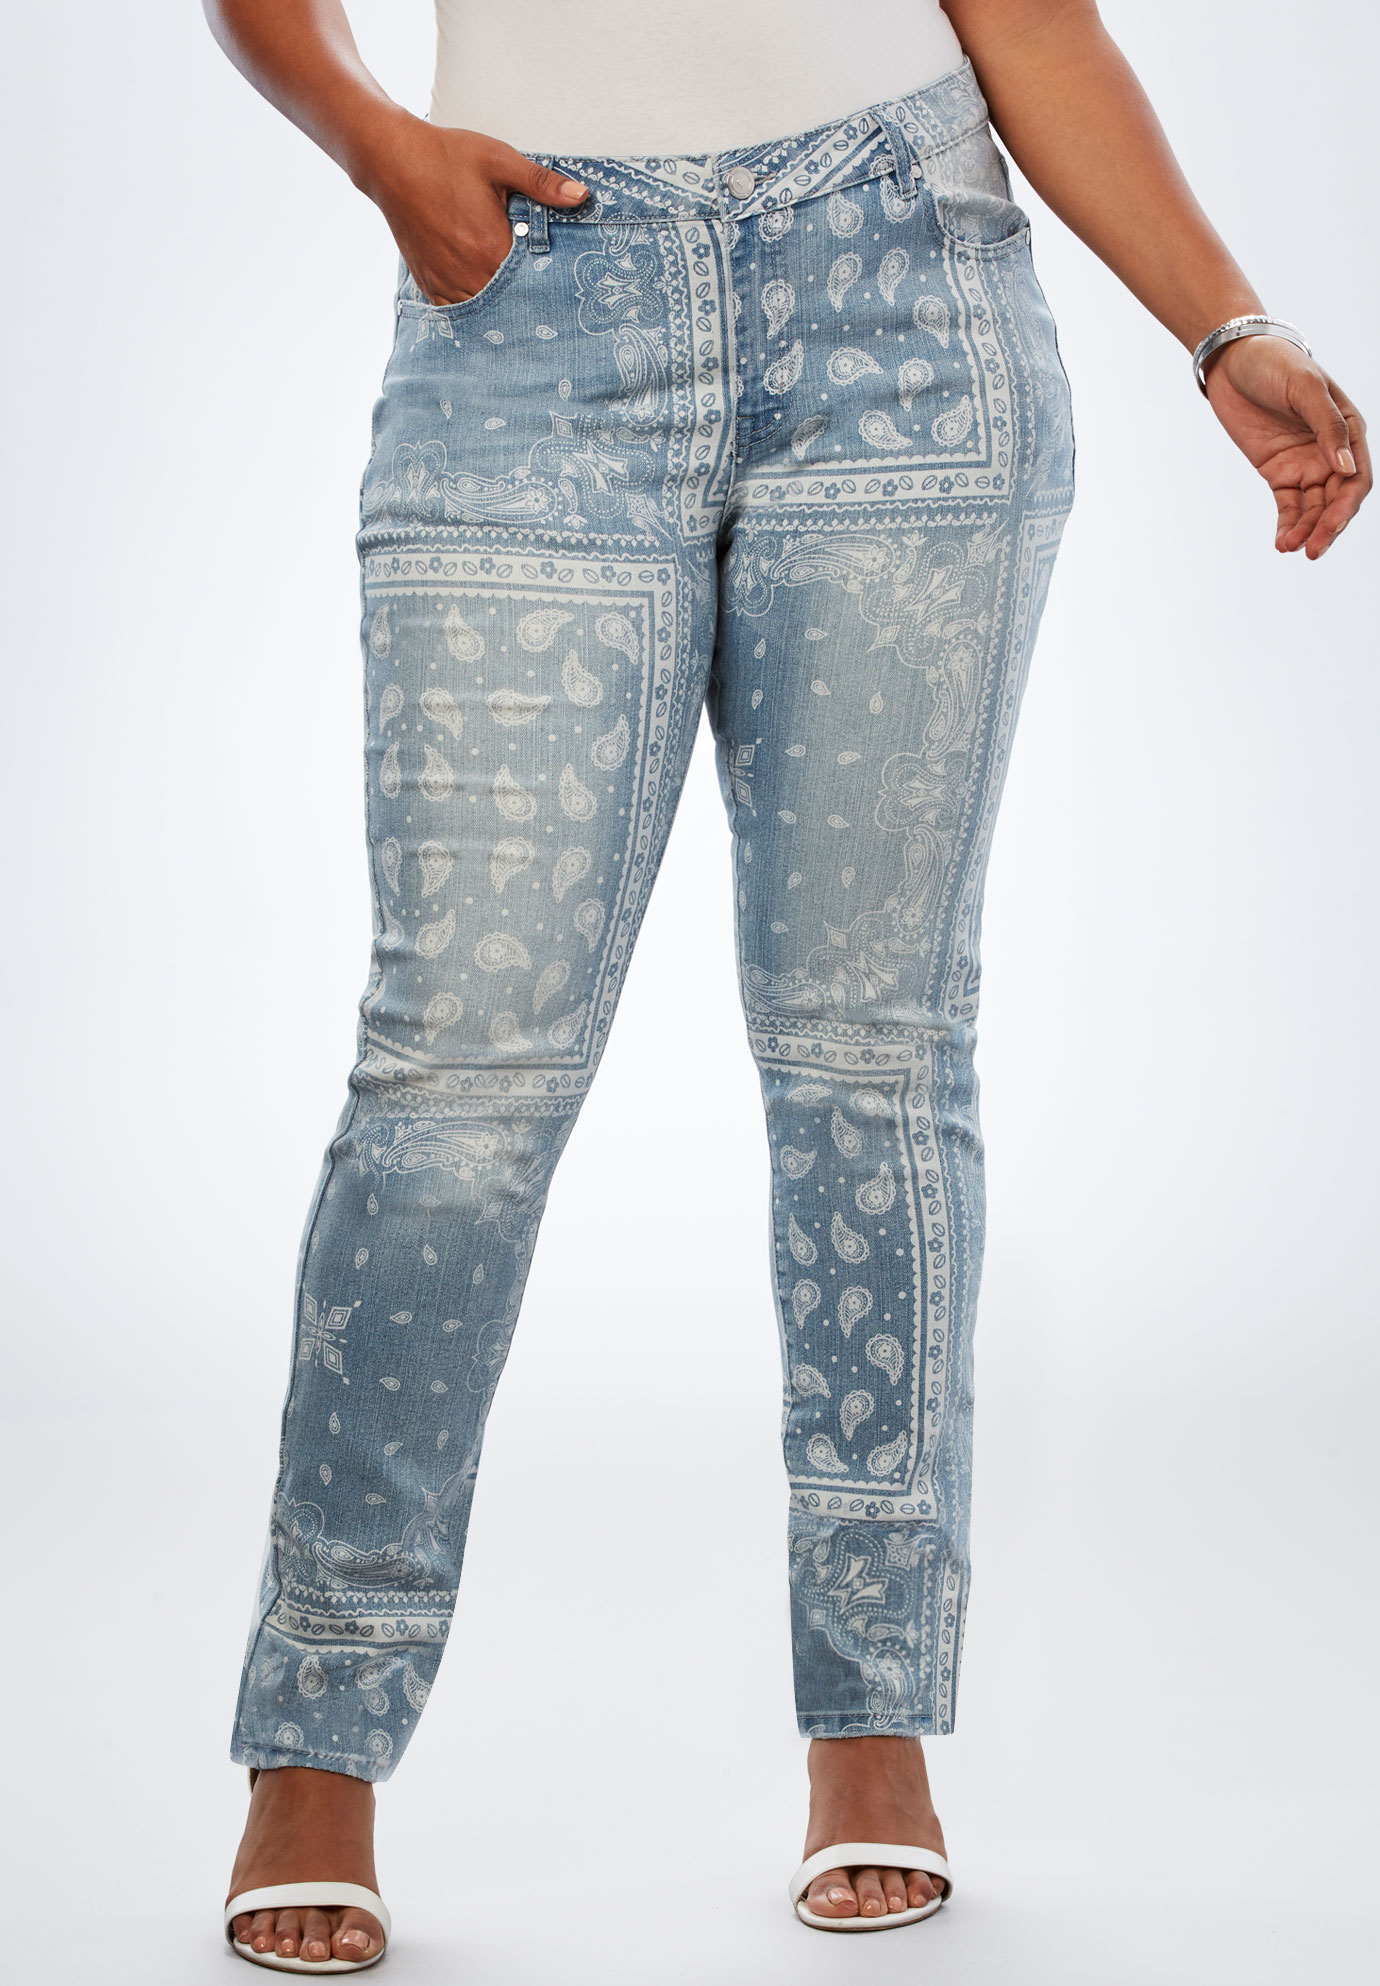 b255c5546ac Bandana-Print Jean by Denim 24 7®